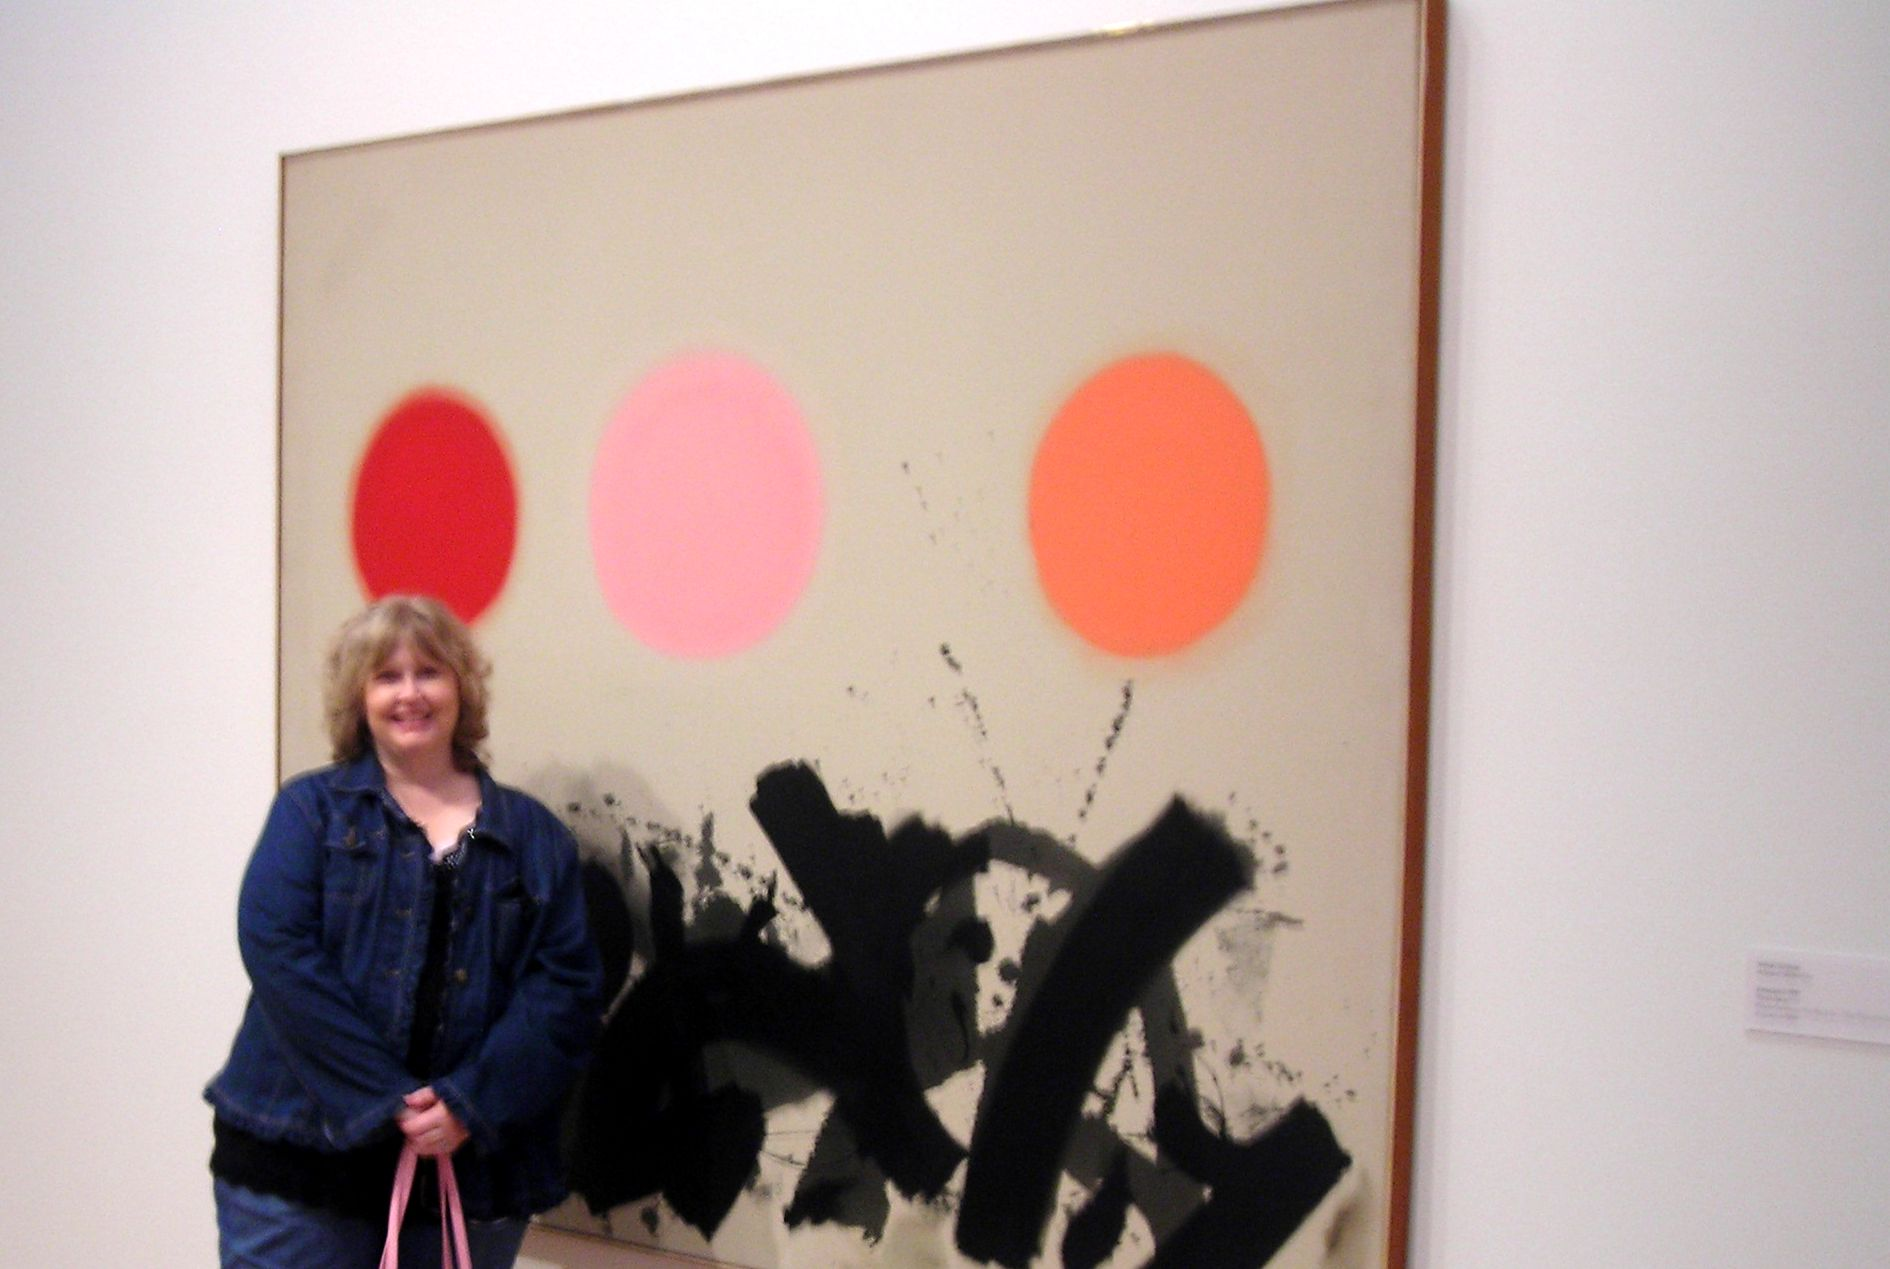 this is art?! okay. at least it has a pink blob on it. oh, and me standing in front of it.